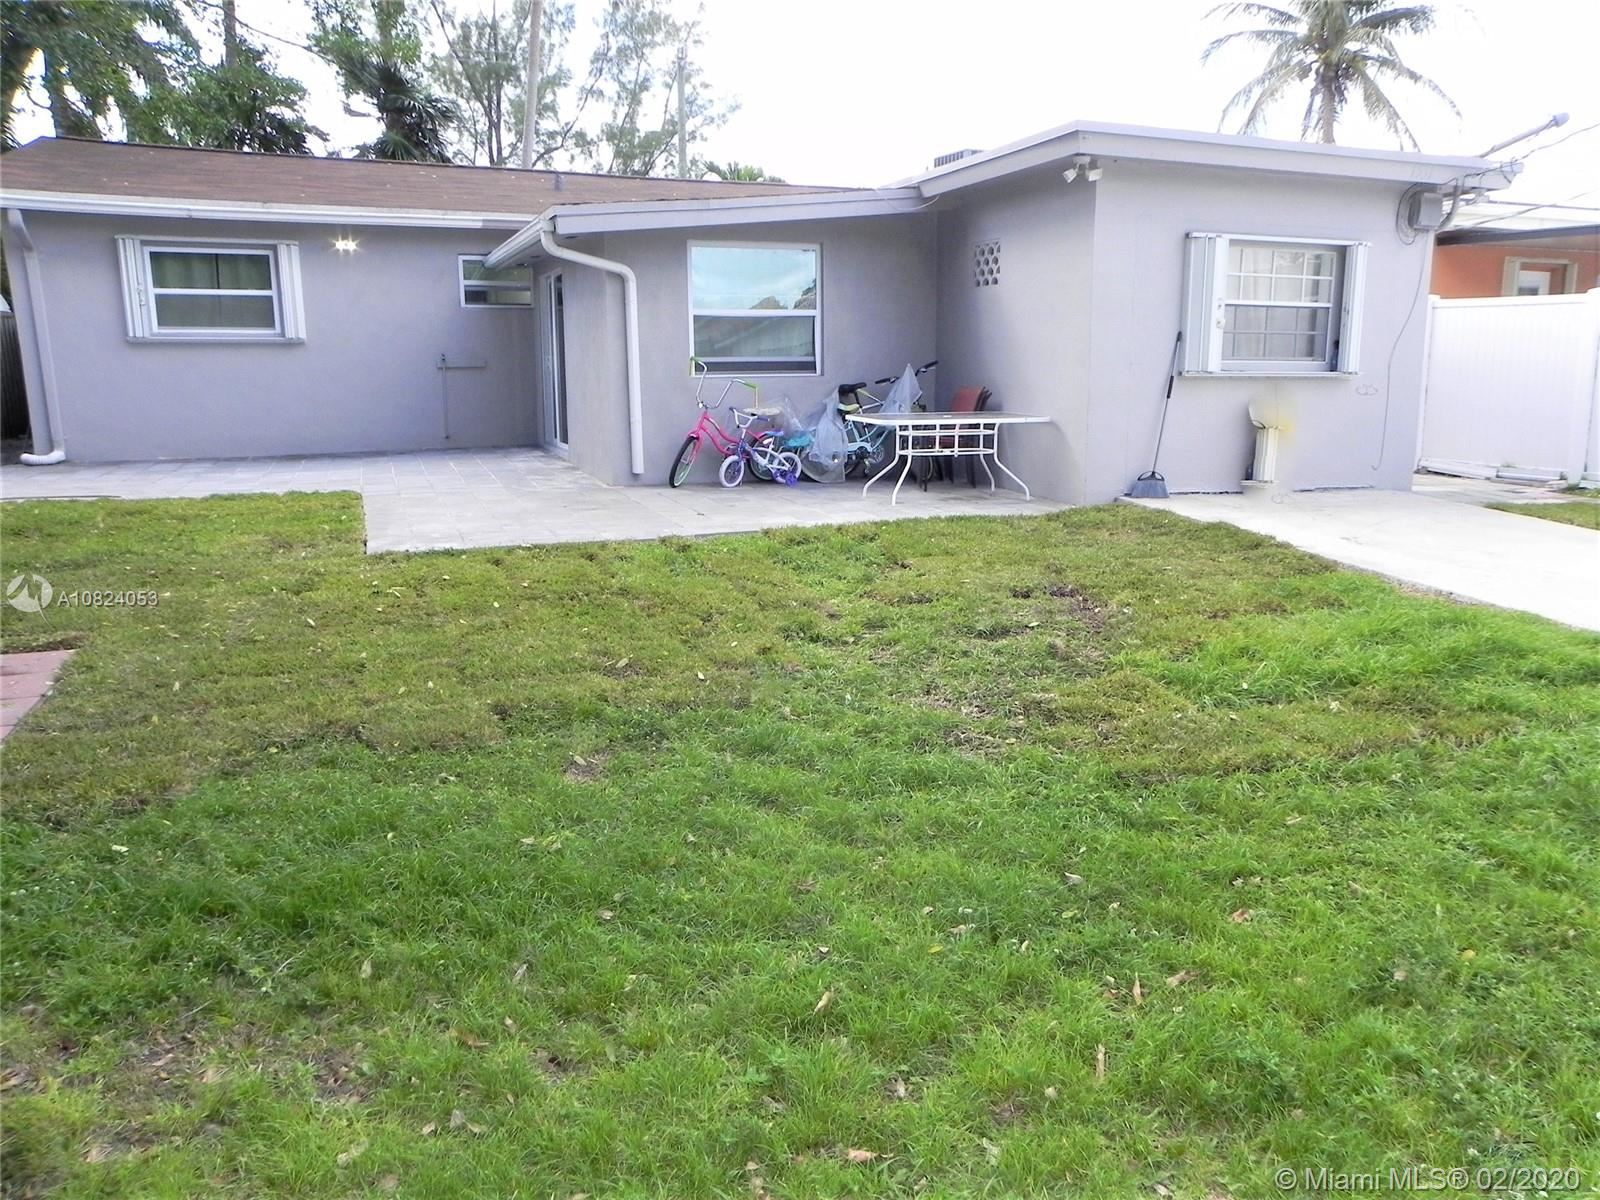 Photo 22 of Listing MLS a10824053 in 1531 Johnson St Hollywood FL 33020